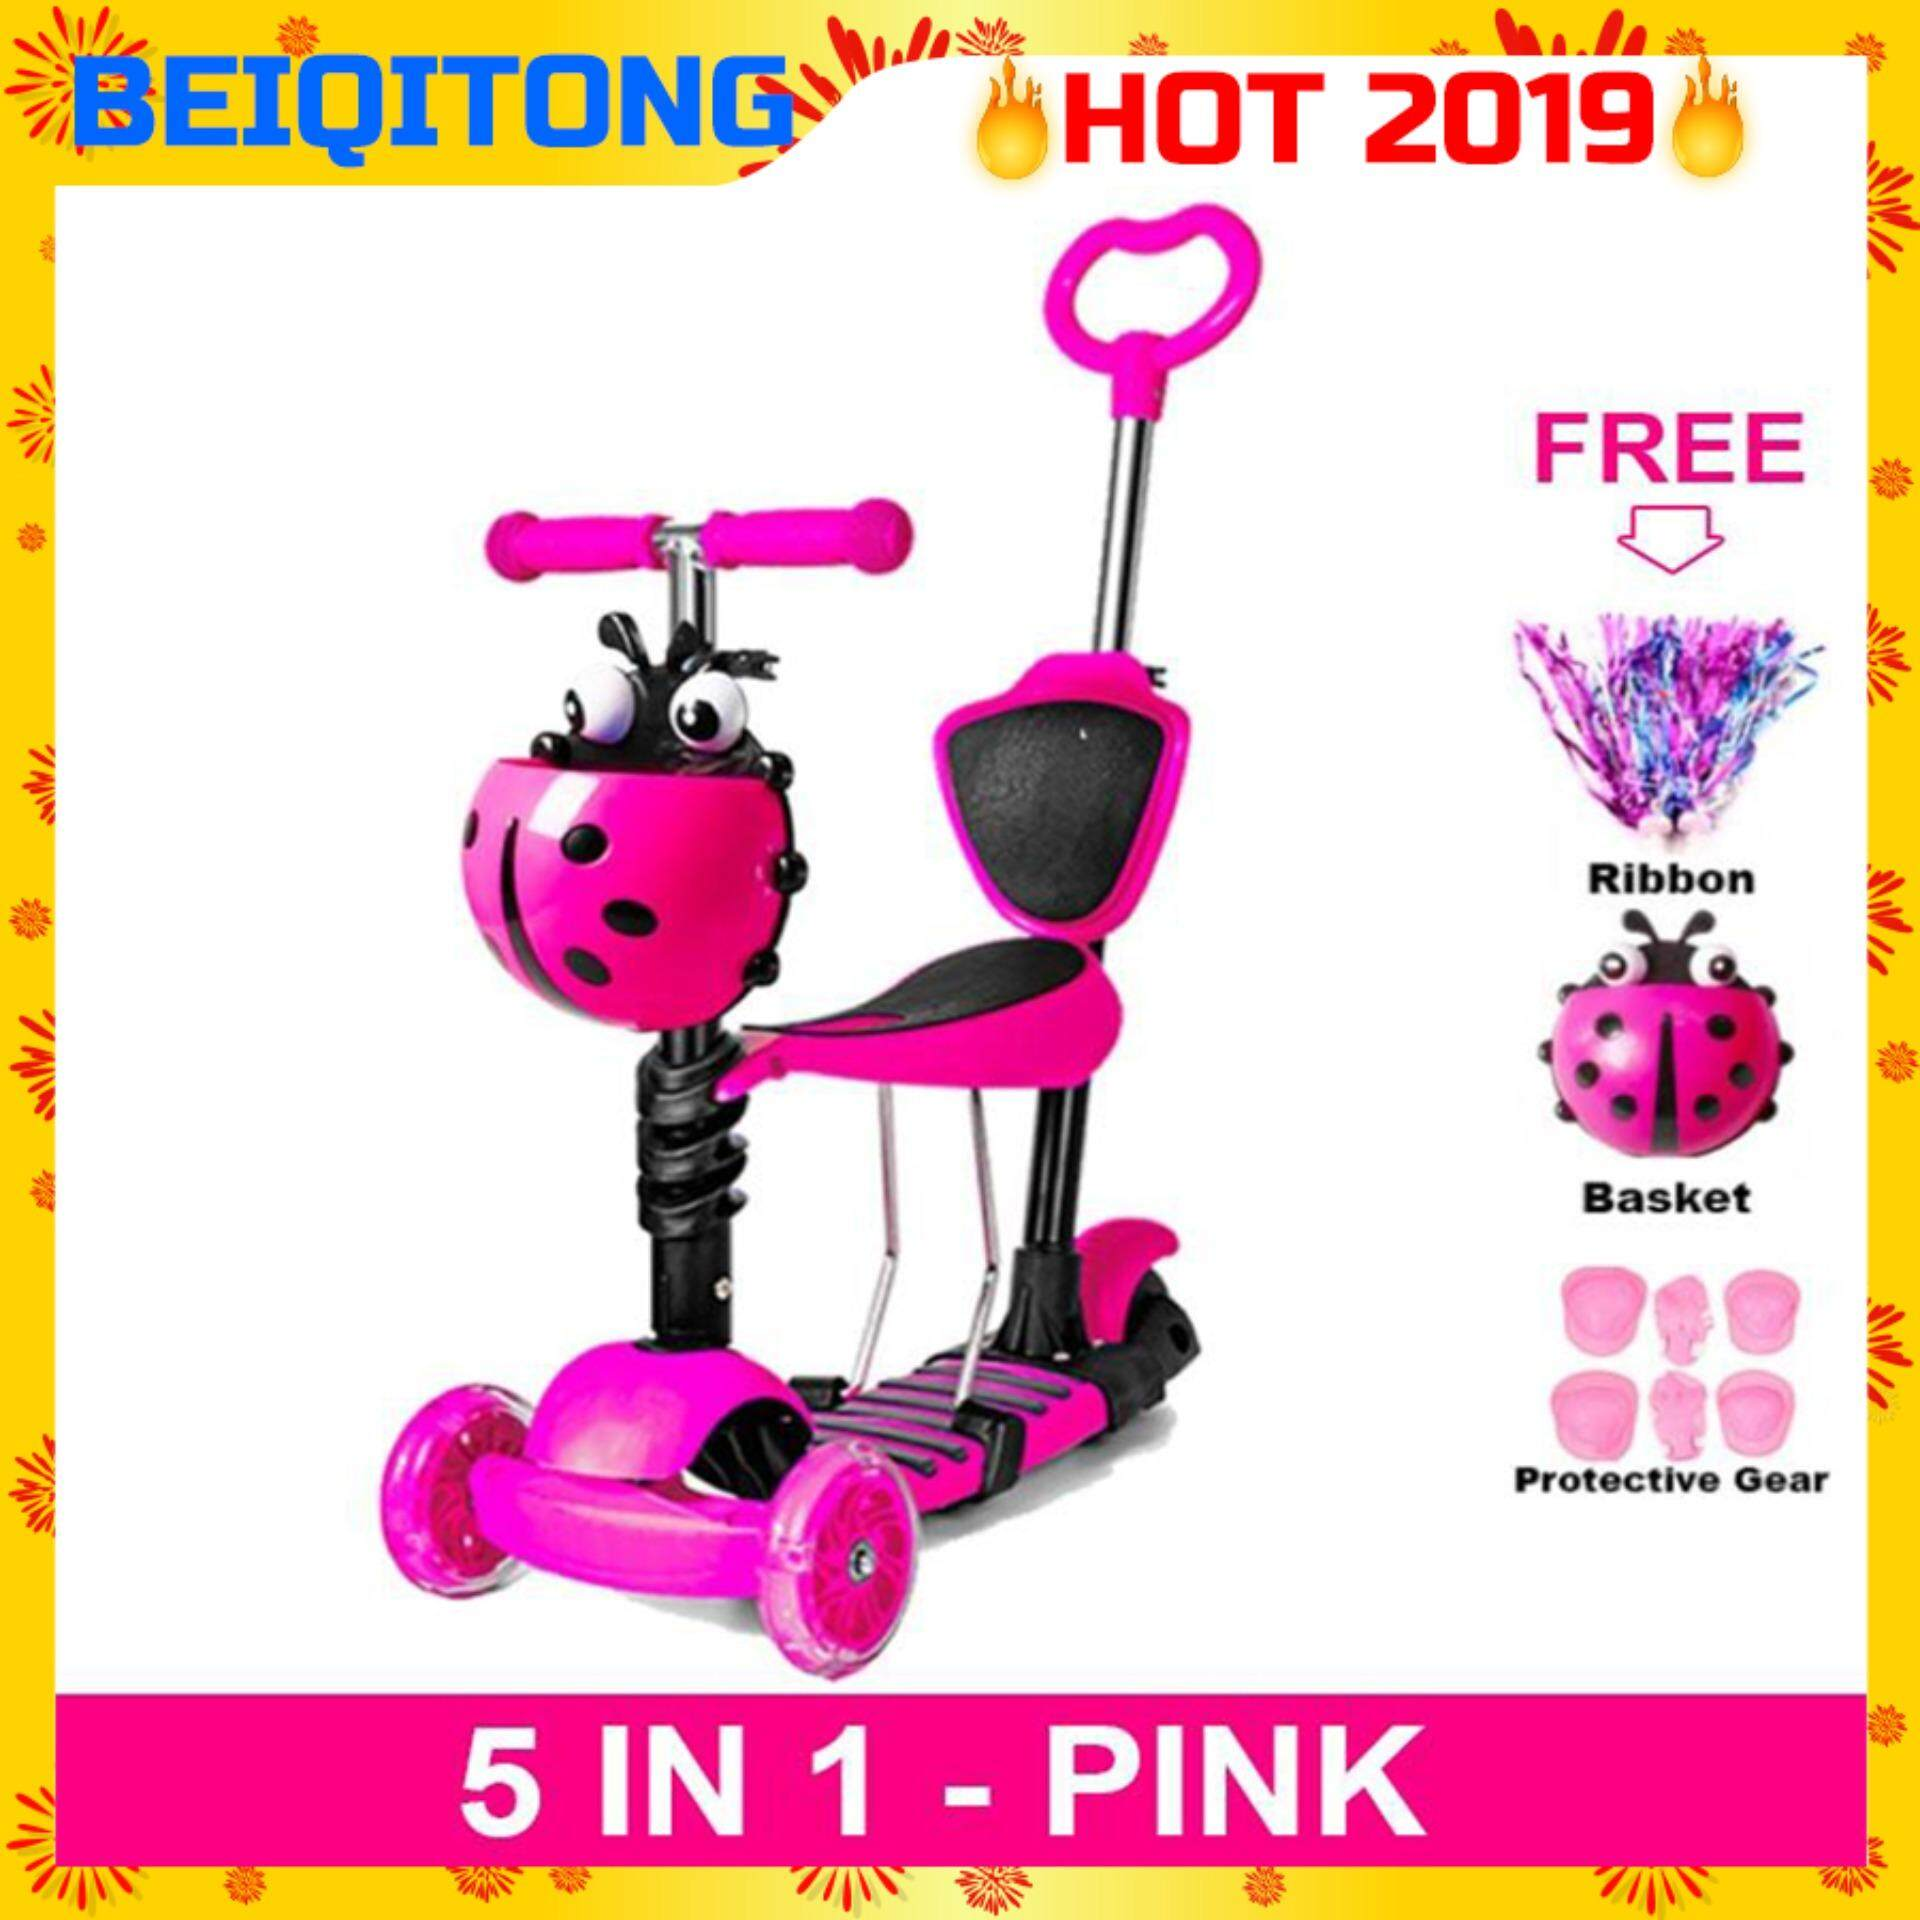 Beiqitong [nb107] Adjustable Seat 5 In 1 Kids Scooter Led Light Wheels Lady Bird Tricycle Scooter With Stroller Handle By Biosys.